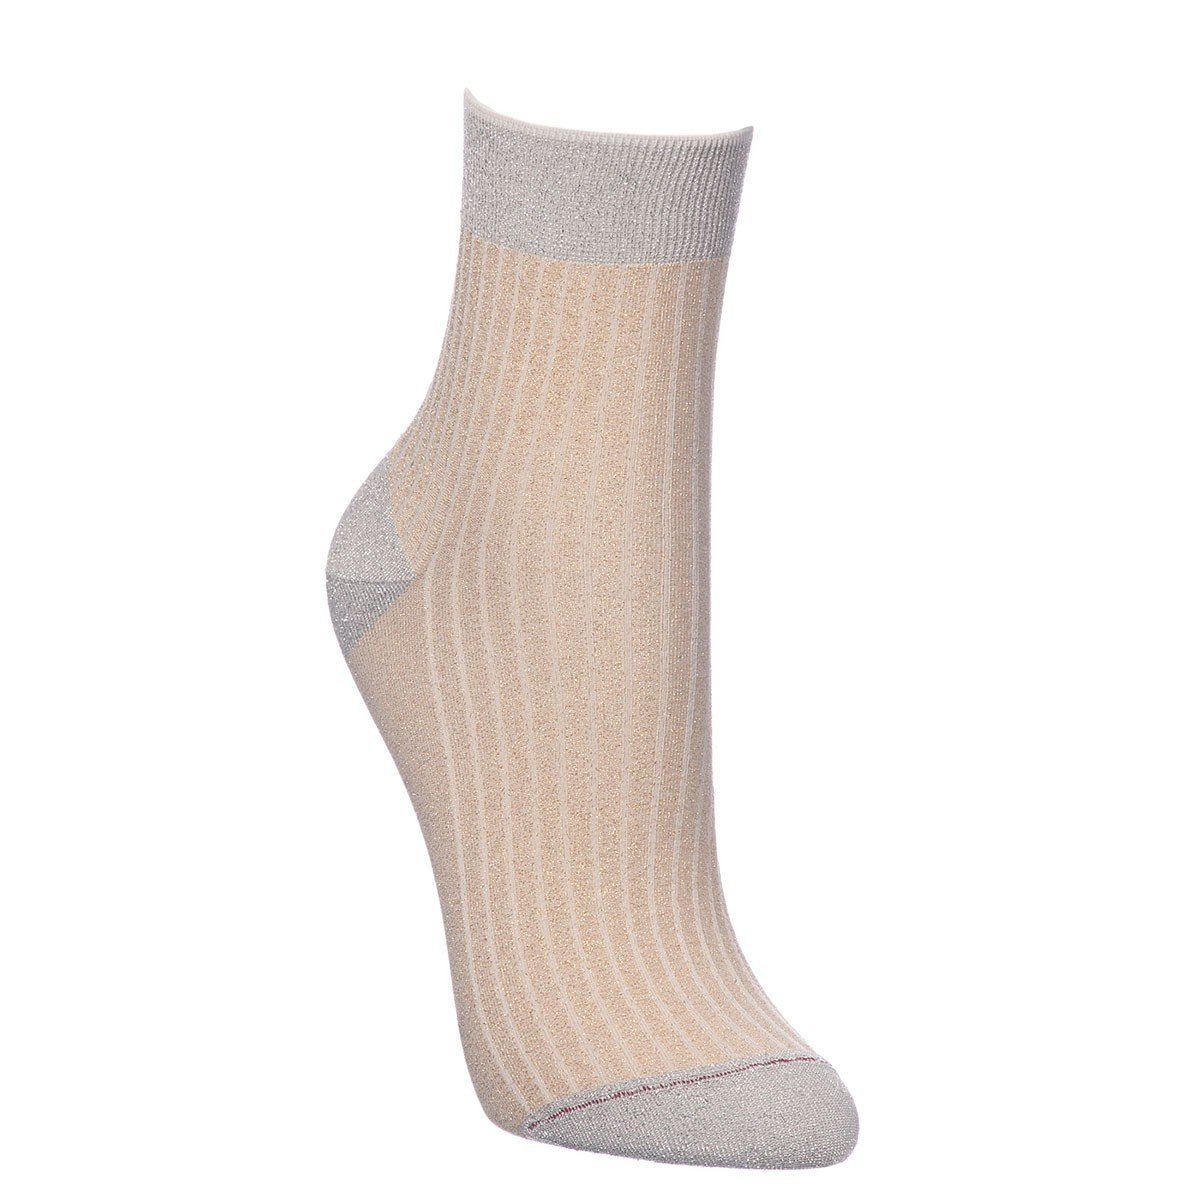 T6194K gold lurex COCK sock